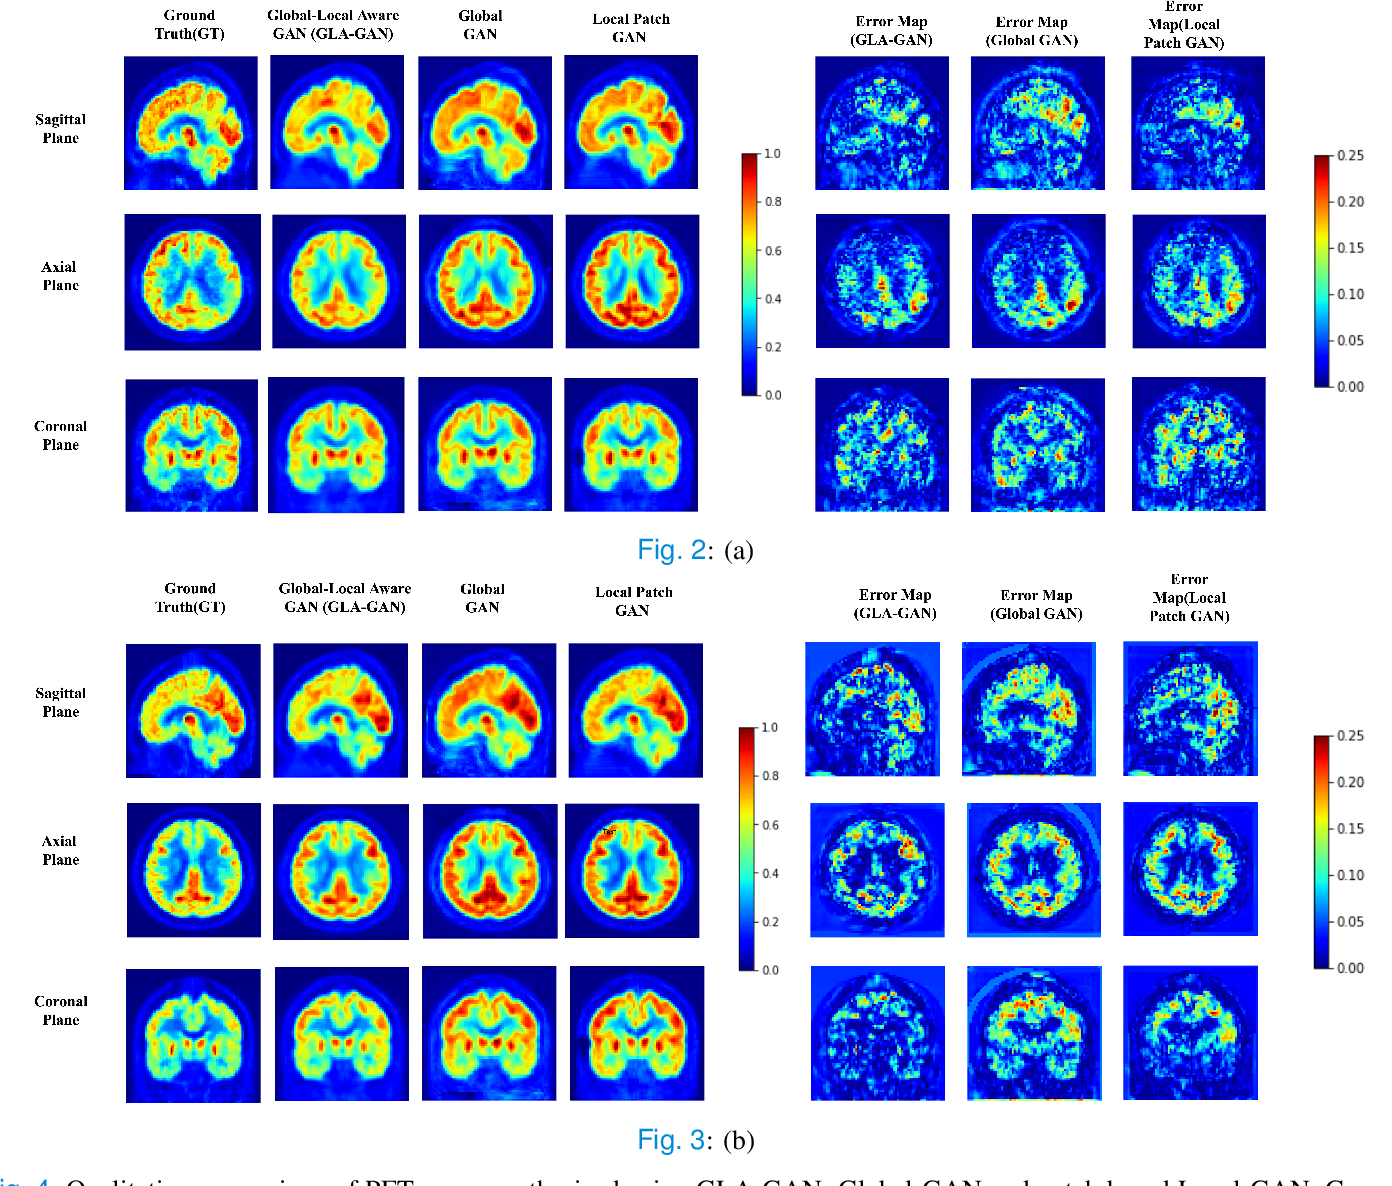 Figure 4 for MRI to PET Cross-Modality Translation using Globally and Locally Aware GAN (GLA-GAN) for Multi-Modal Diagnosis of Alzheimer's Disease